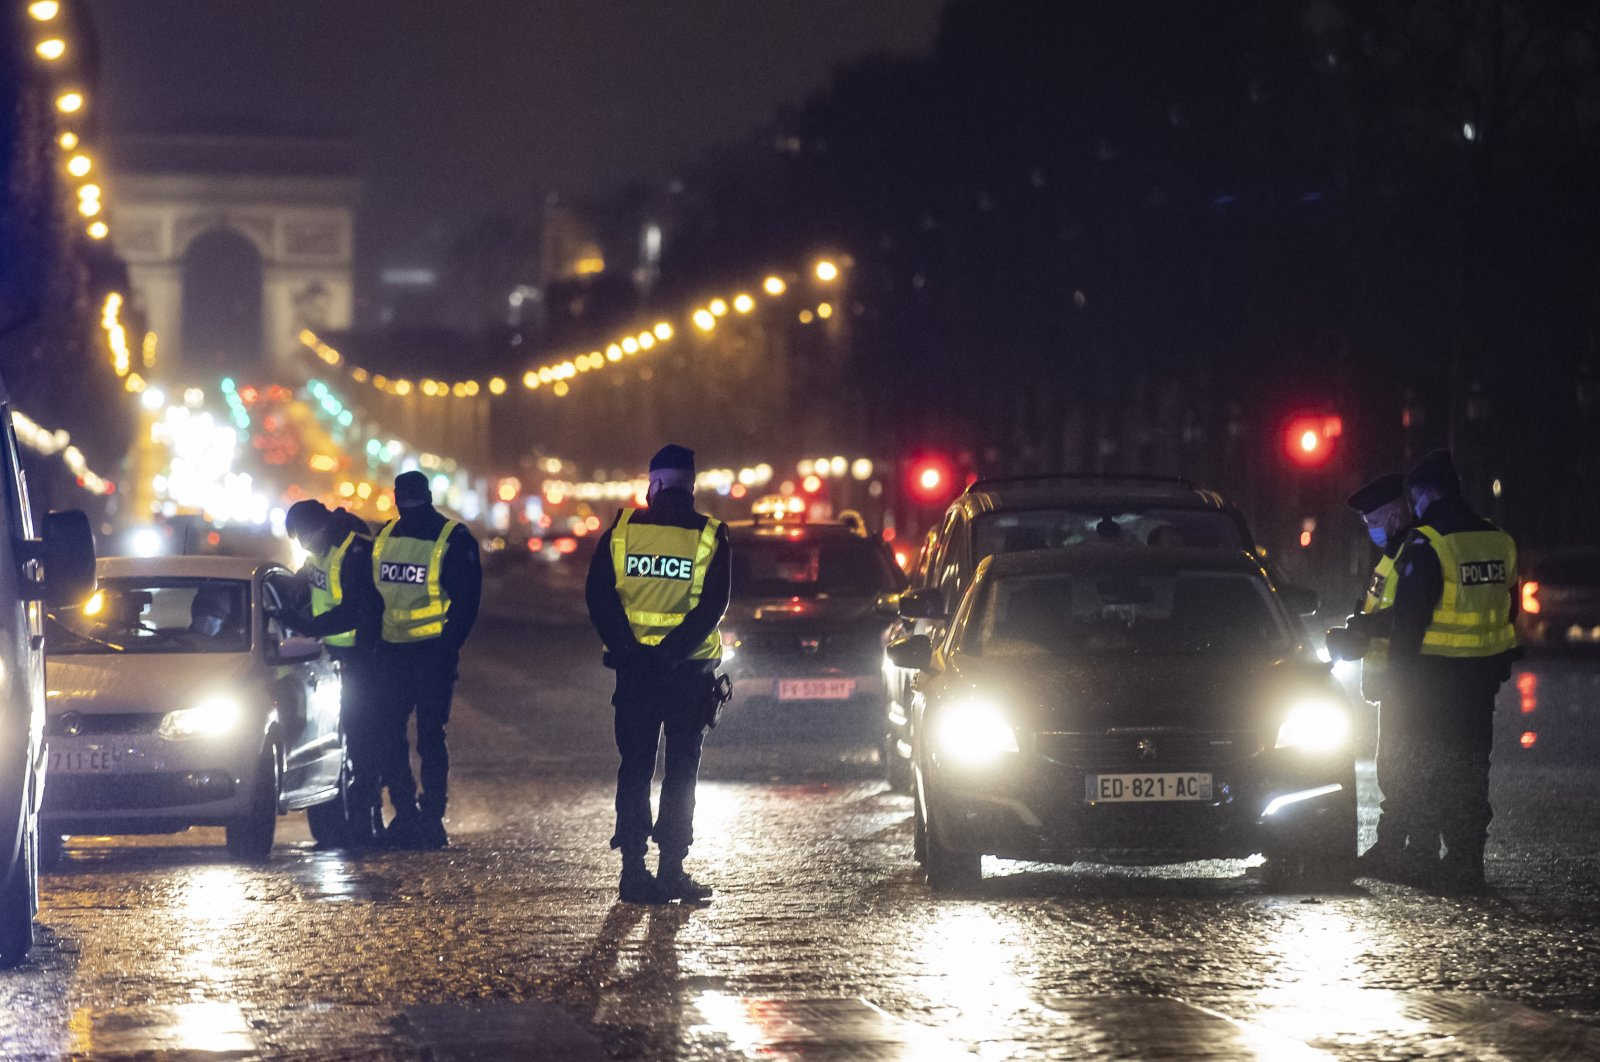 French police officers man a checkpoint on the Champs-Elysees to check drivers' authorizations to be outdoors after the 6 p.m. curfew, in Paris, France, Jan. 16, 2021. (EPA Photo)